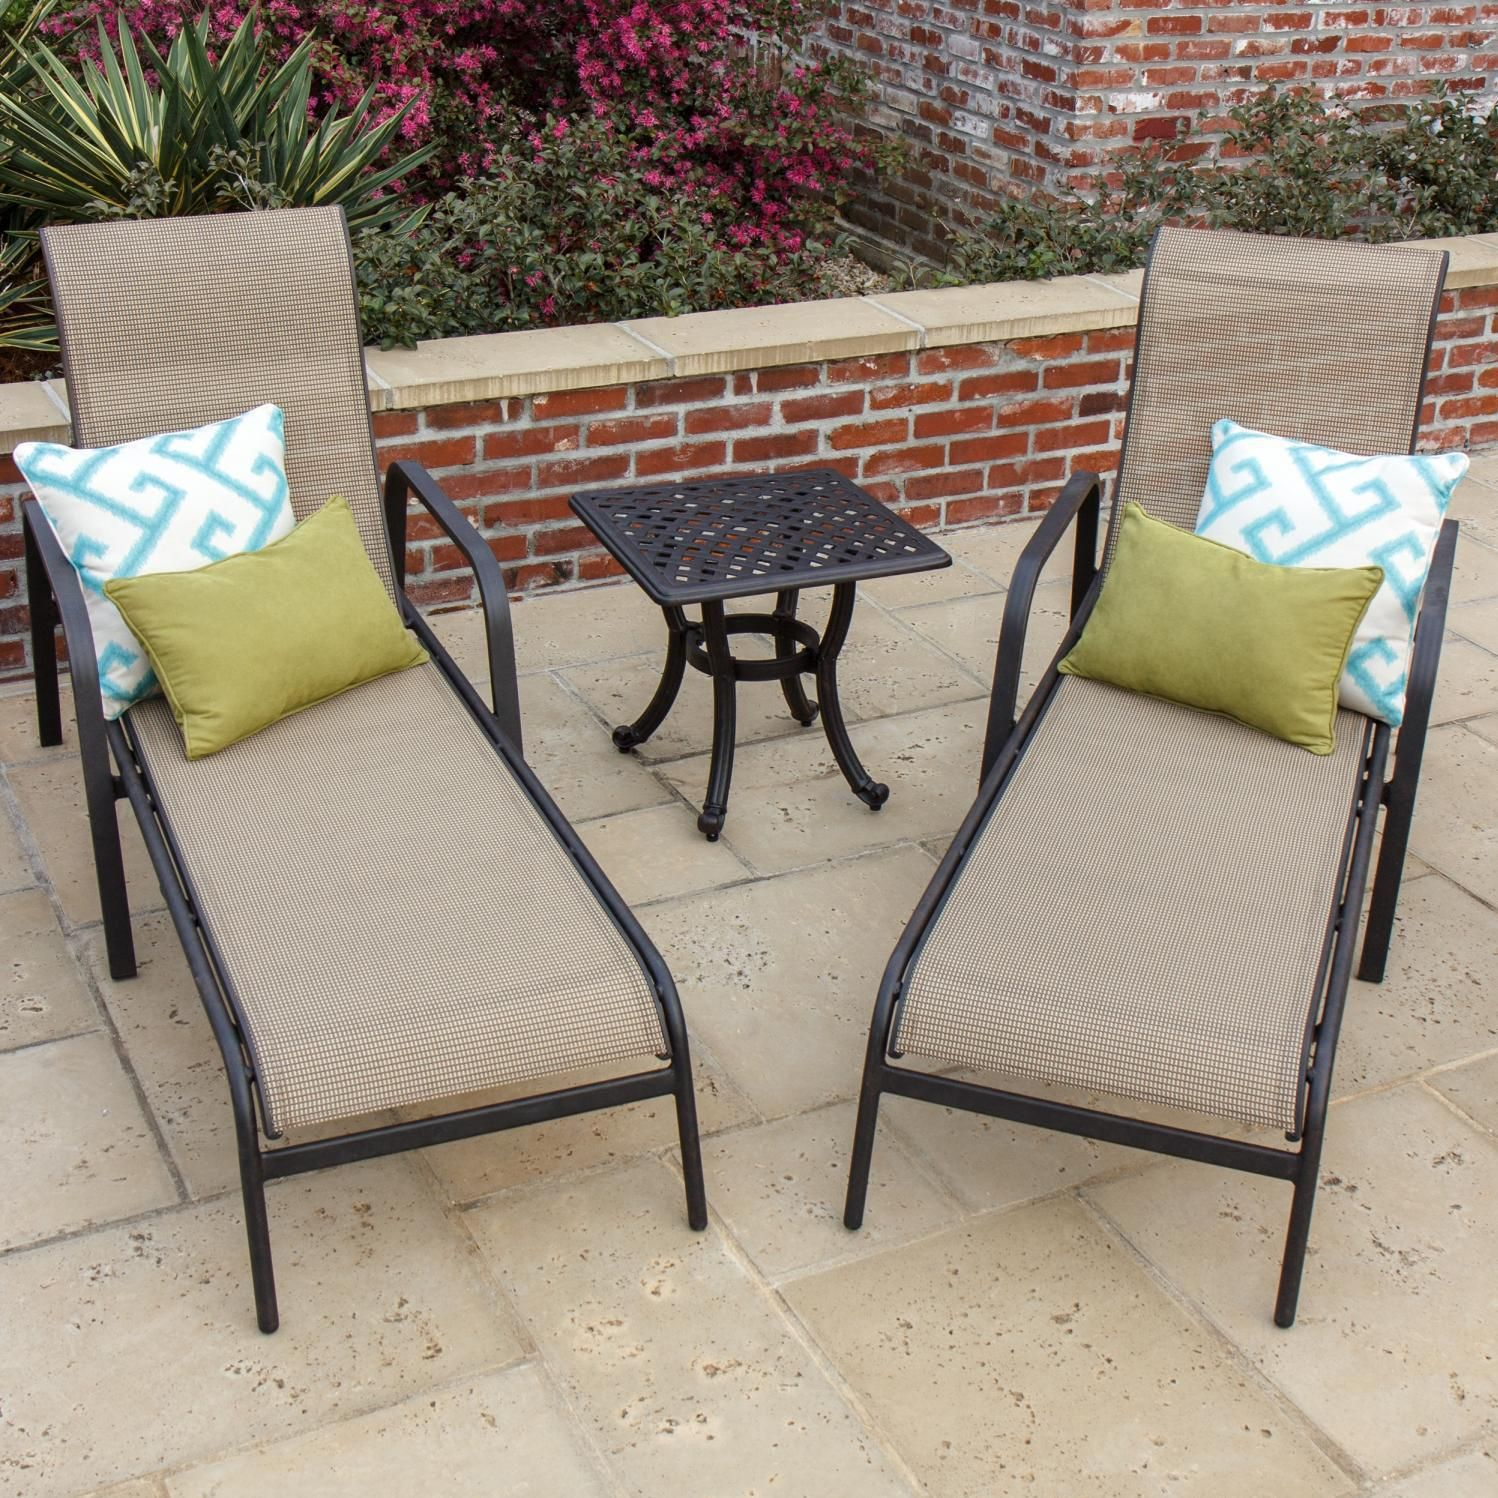 Madison Bay 3 Piece Sling Patio Chaise Lounge Set By Lakeview Outdoor  Designs : Ultimate Patio